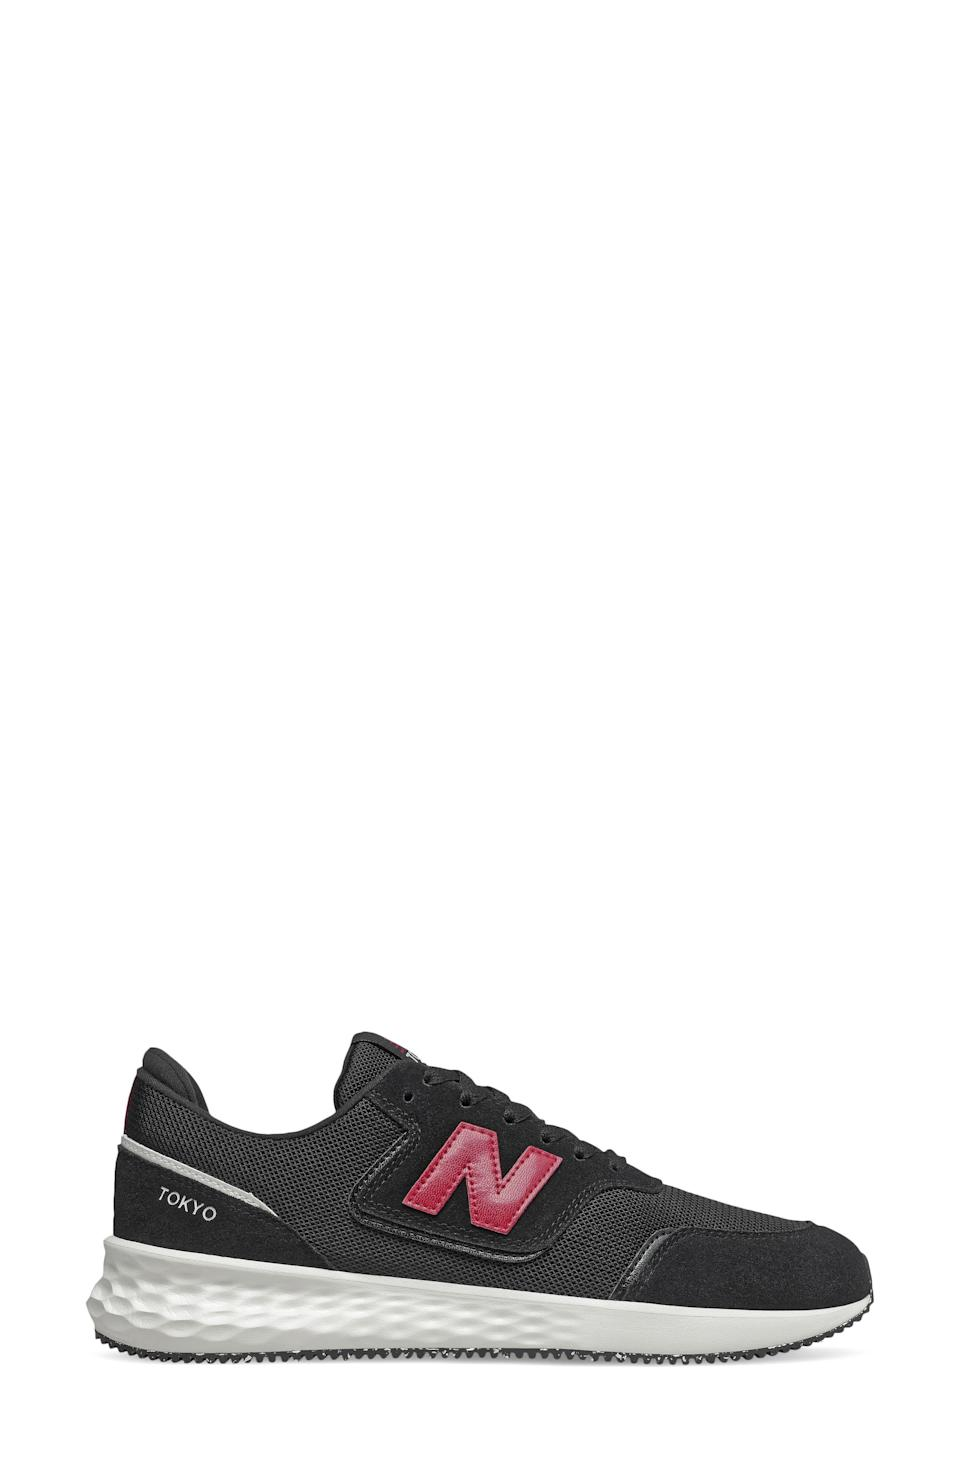 """<p><strong>NEW BALANCE</strong></p><p>nordstrom.com</p><p><a href=""""https://go.redirectingat.com?id=74968X1596630&url=https%3A%2F%2Fwww.nordstrom.com%2Fs%2Fnew-balance-fresh-foam-x-70-sneaker-men%2F5955974&sref=https%3A%2F%2Fwww.menshealth.com%2Fstyle%2Fg37081969%2Fnordstroms-anniversary-sale-best-sneakers%2F"""" rel=""""nofollow noopener"""" target=""""_blank"""" data-ylk=""""slk:BUY IT HERE"""" class=""""link rapid-noclick-resp"""">BUY IT HERE</a></p><p><del>$75</del><del><br></del><strong>$49.90</strong><strong><strong><br></strong></strong></p><p>Trust us, New Balance's Fresh Foam X-70 sneakers will have you feeling like you're walking (or running) on cloud nine. Not only is the Fresh Foam sole comfortable, but this style also has padding in the tongue and around the heel for good measure.<br></p>"""